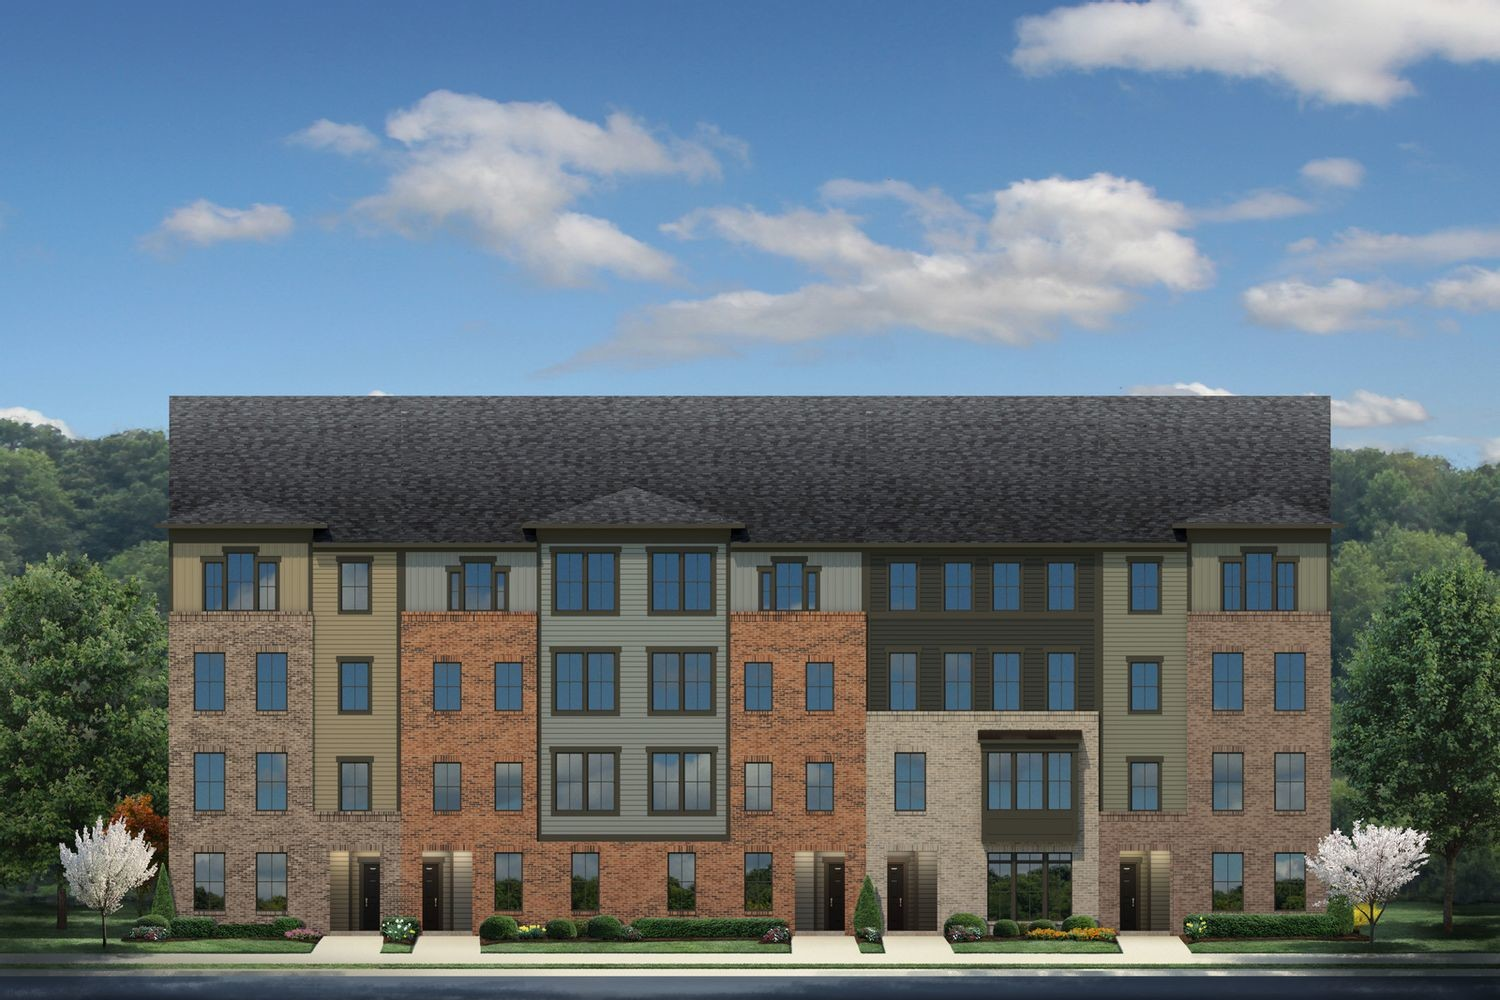 Move In Ready New Home In Foster's Glen Townhomes & Condos Community